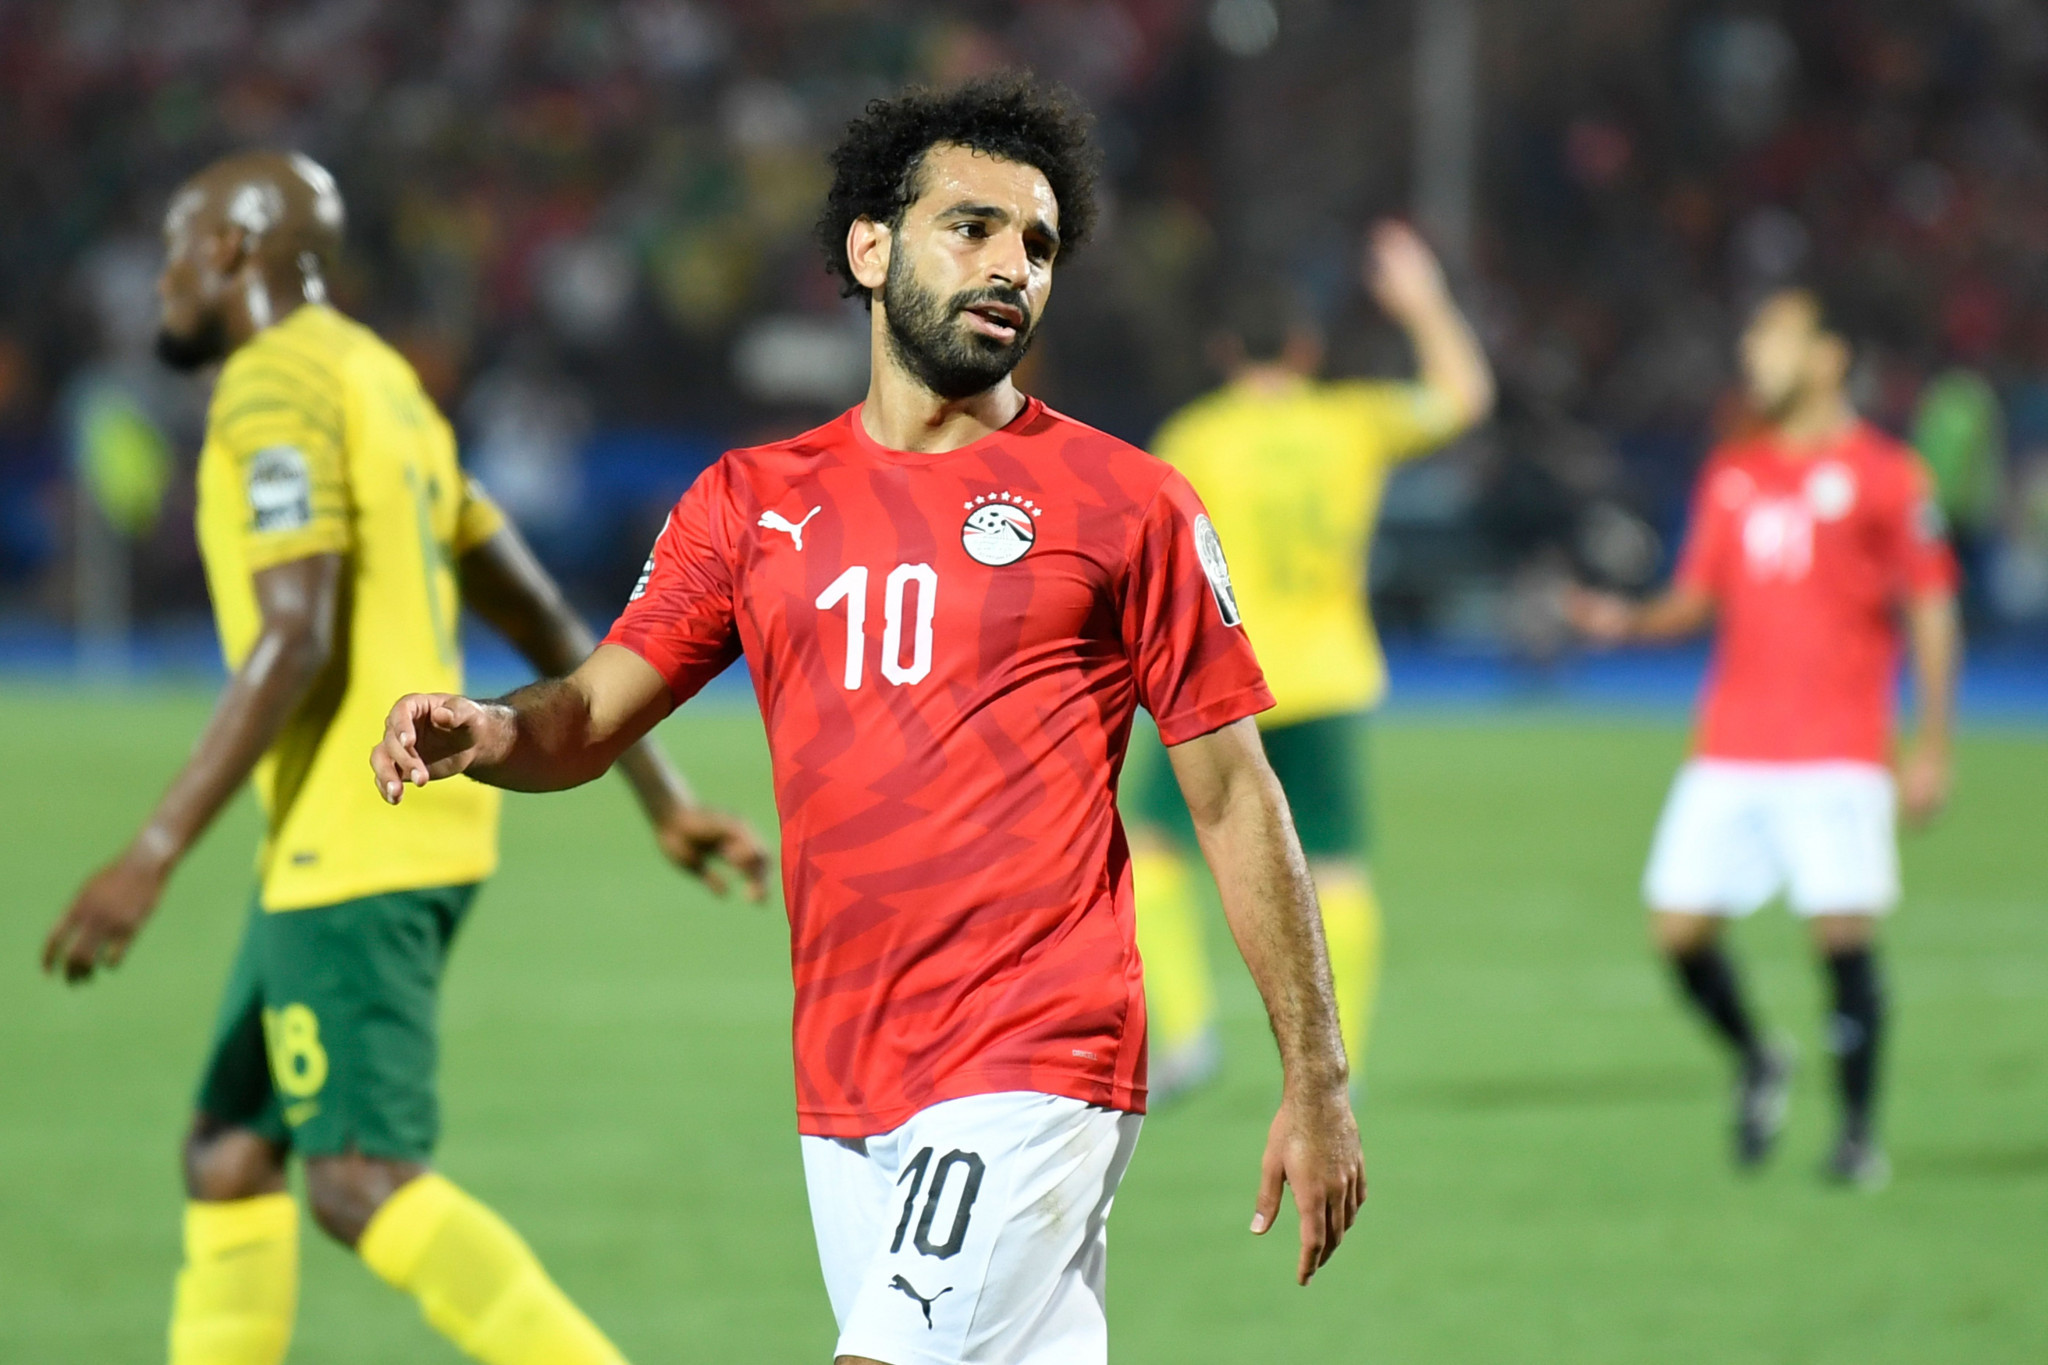 Mohamed Salah would be a key player in Egypt's team if selected ©Getty Images